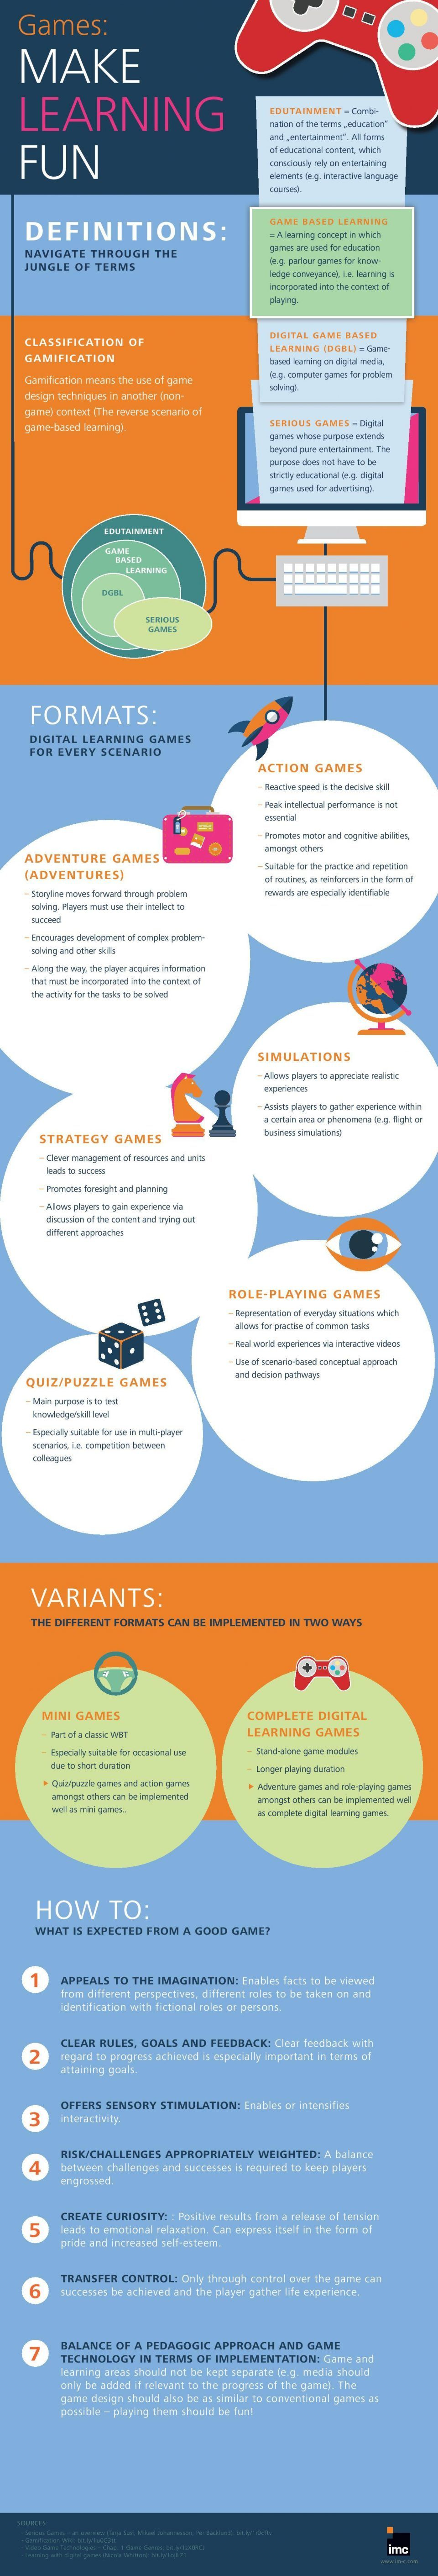 Games Make Learning Fun Infographic